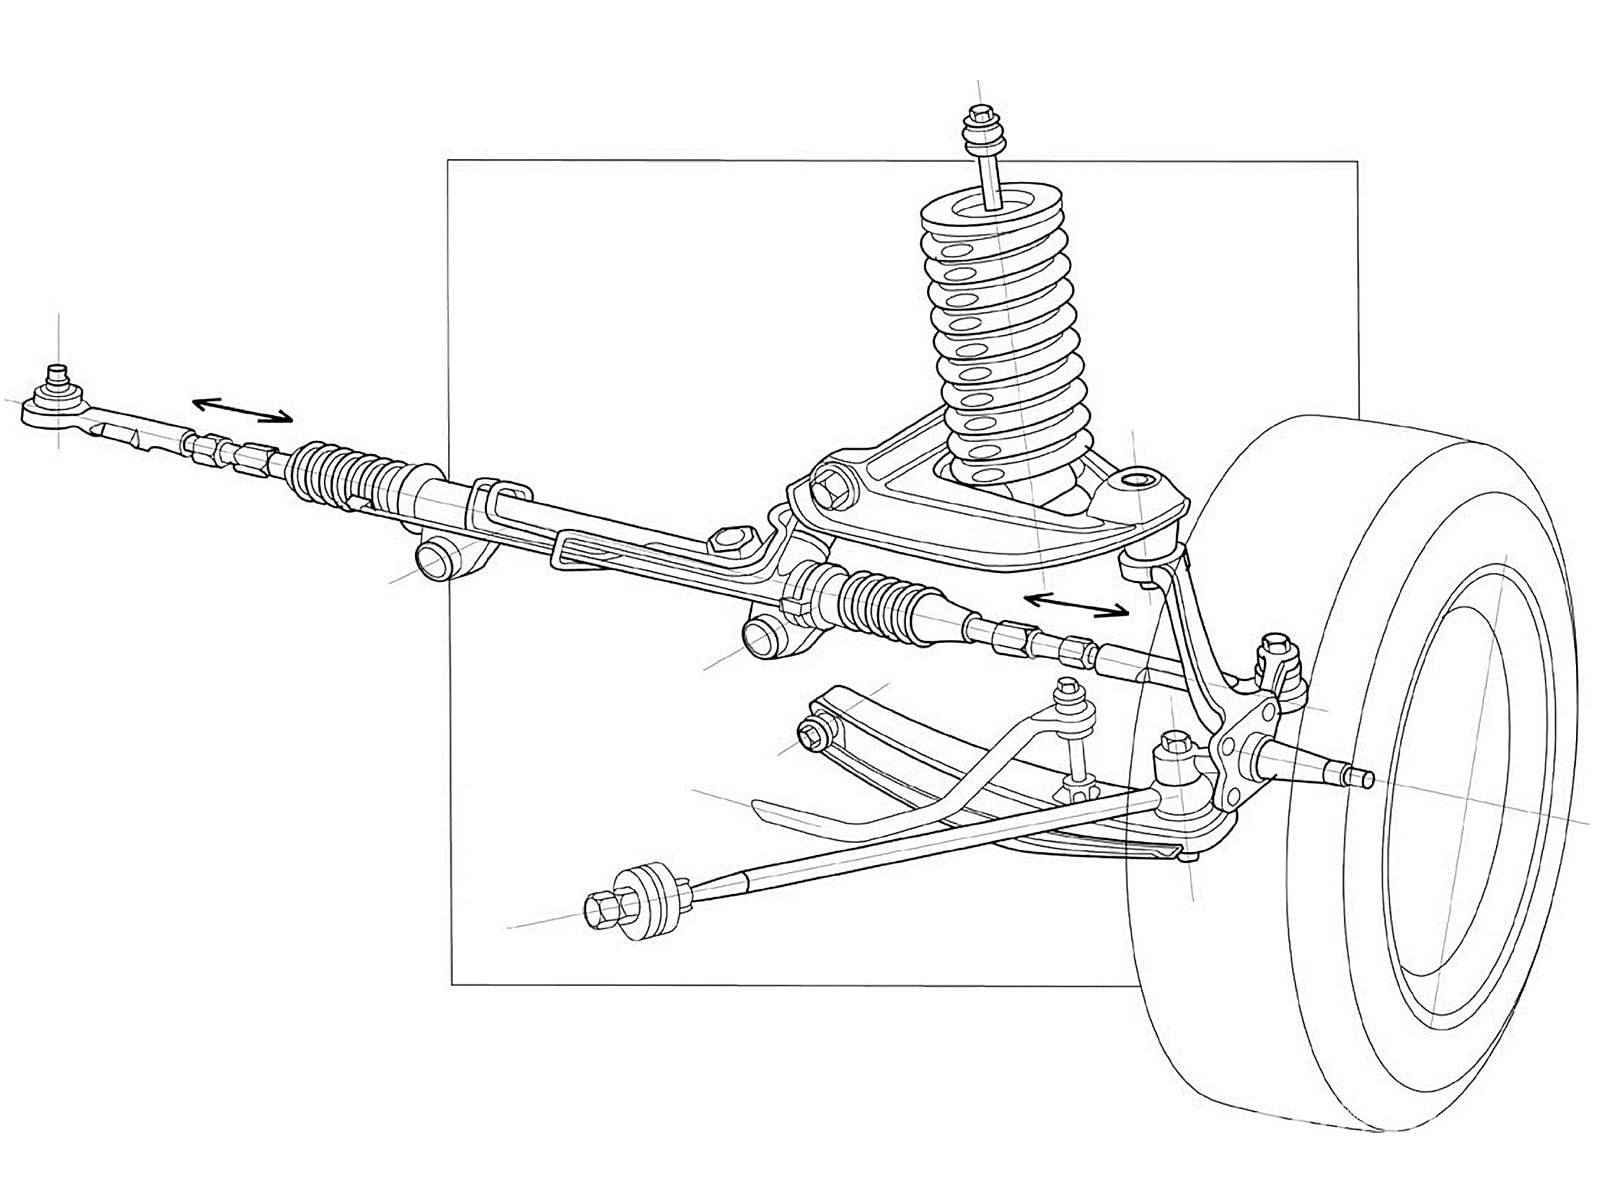 1963 Impala Steering Column Diagram : 35 Wiring Diagram